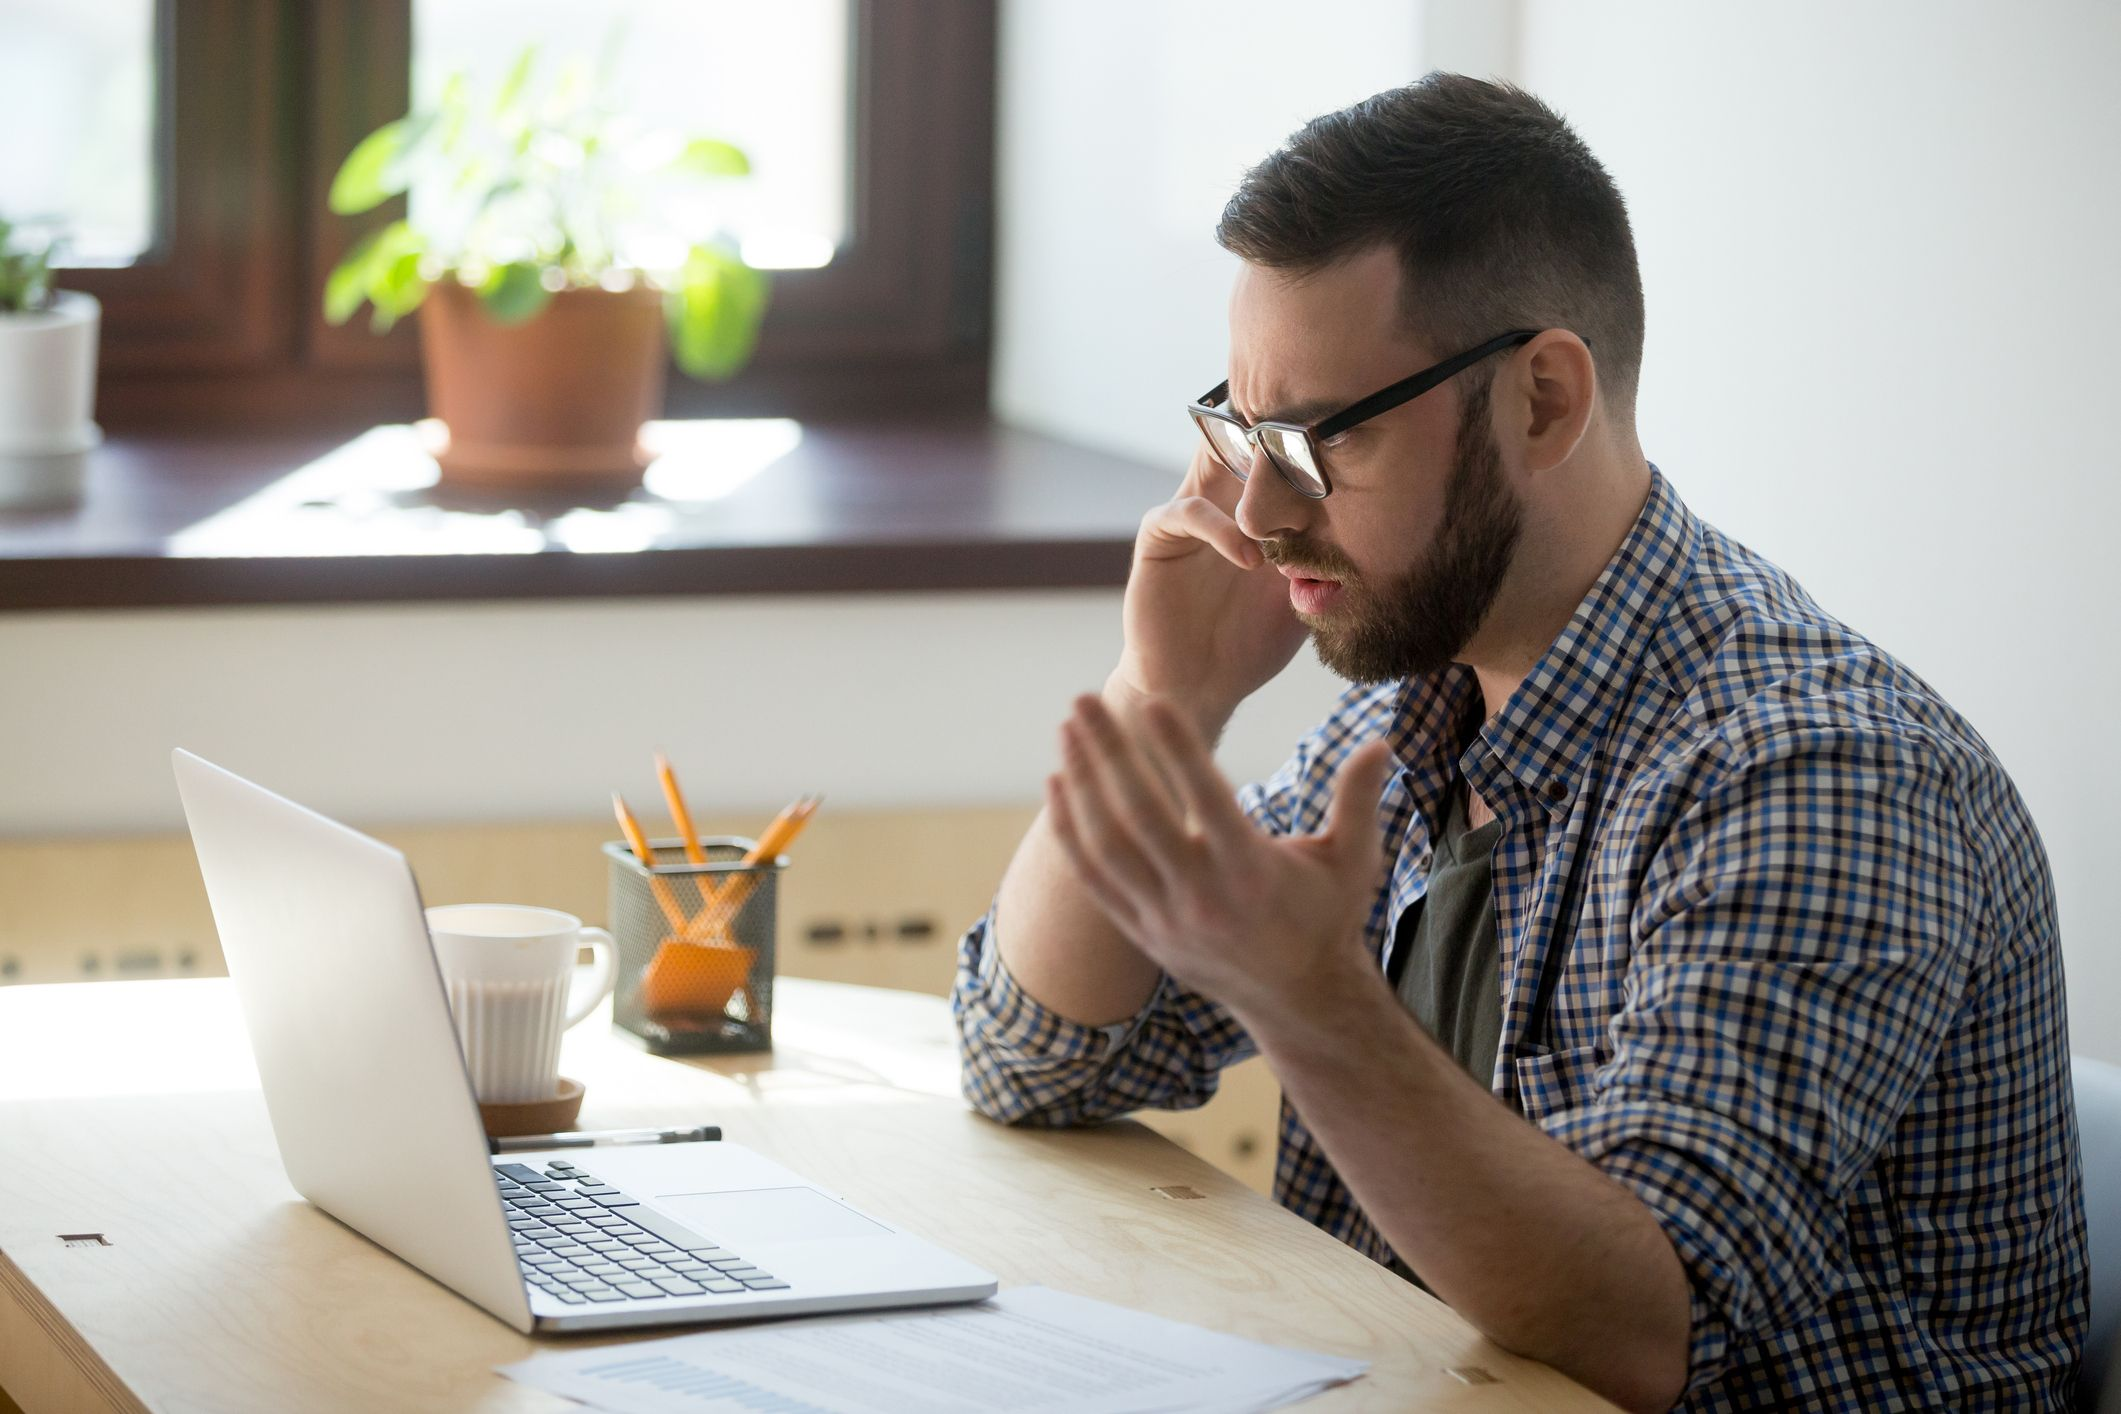 Frustrated man unable to control anger over the phone